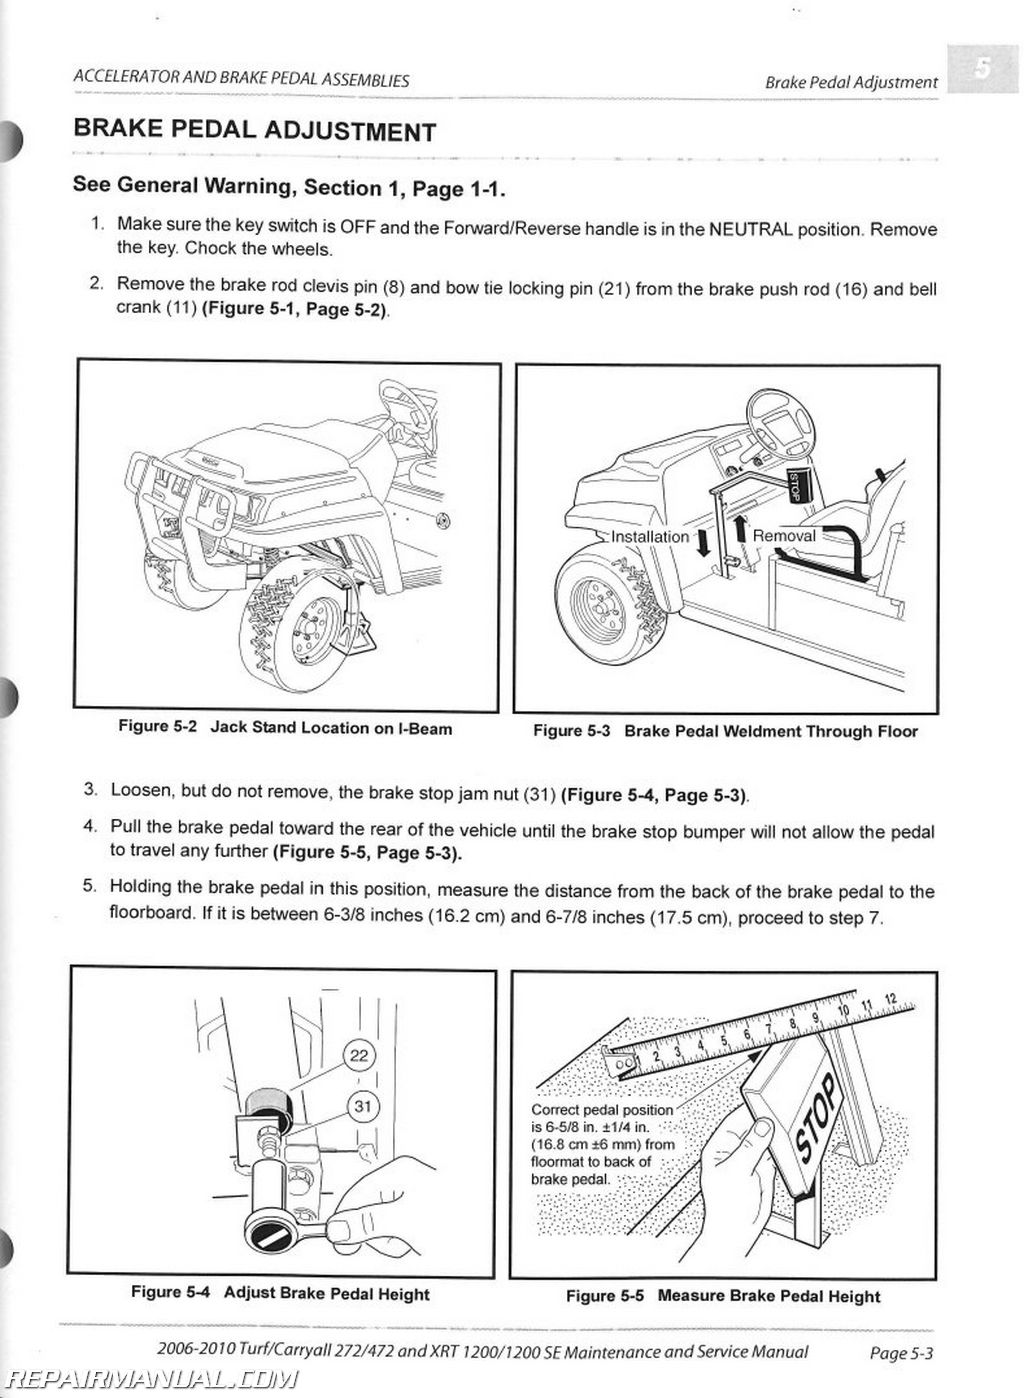 2006 2010 Club Car Turf Carryall 272 472 Xrt1200 Se Ignition Switch Wiring Diagram Free Download Xrt 1200 And Gas Service Manual